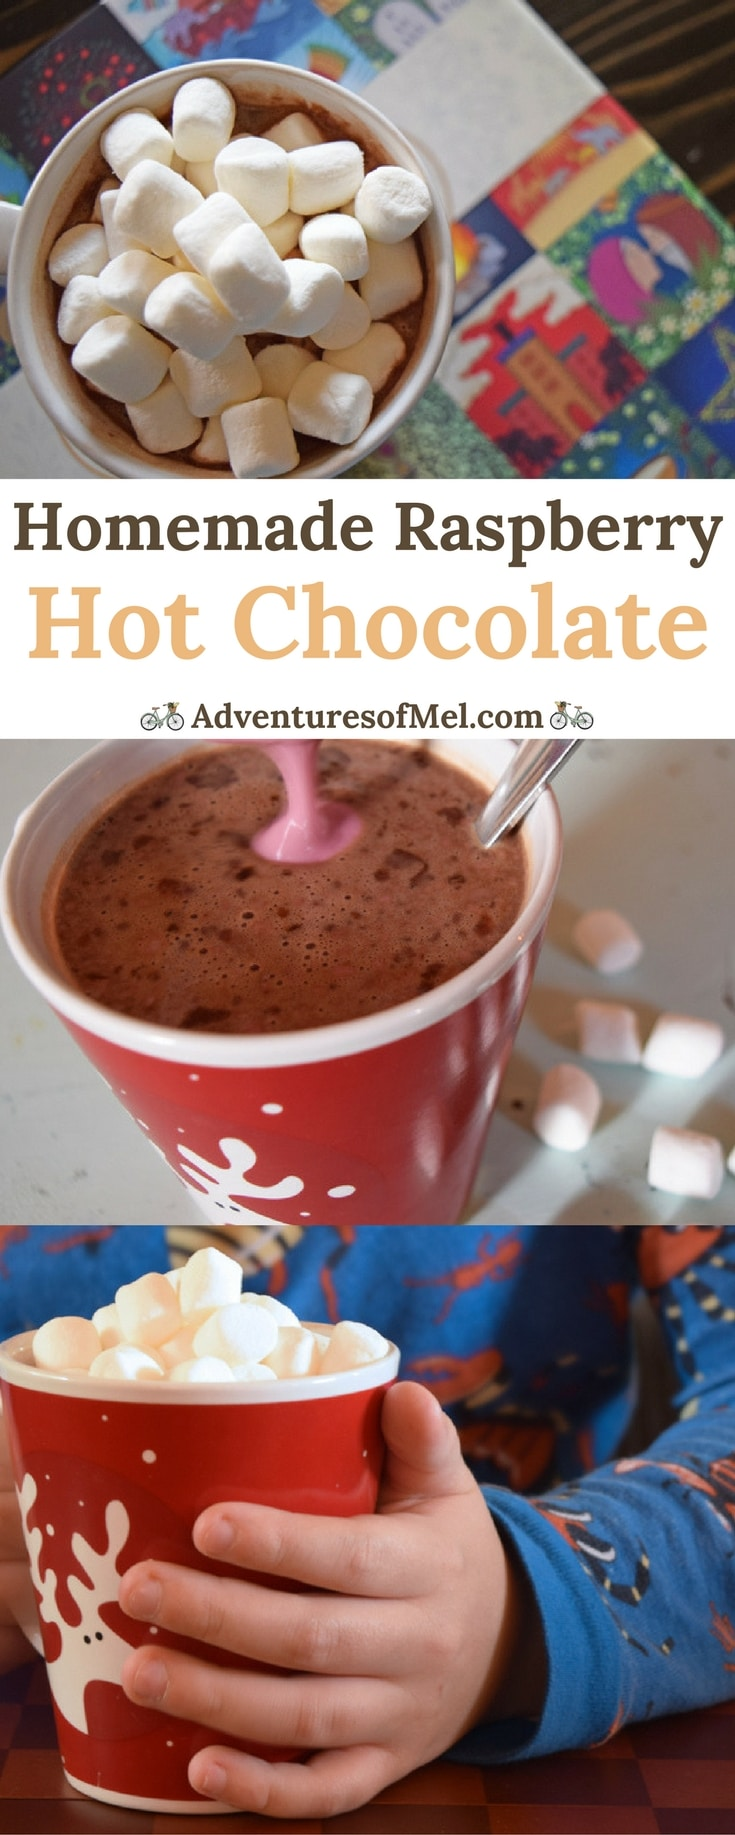 Cozy up with a warm cup of Raspberry Hot Chocolate, a sweet treat and a delicious homemade drink the whole family will love on a cold winter day.